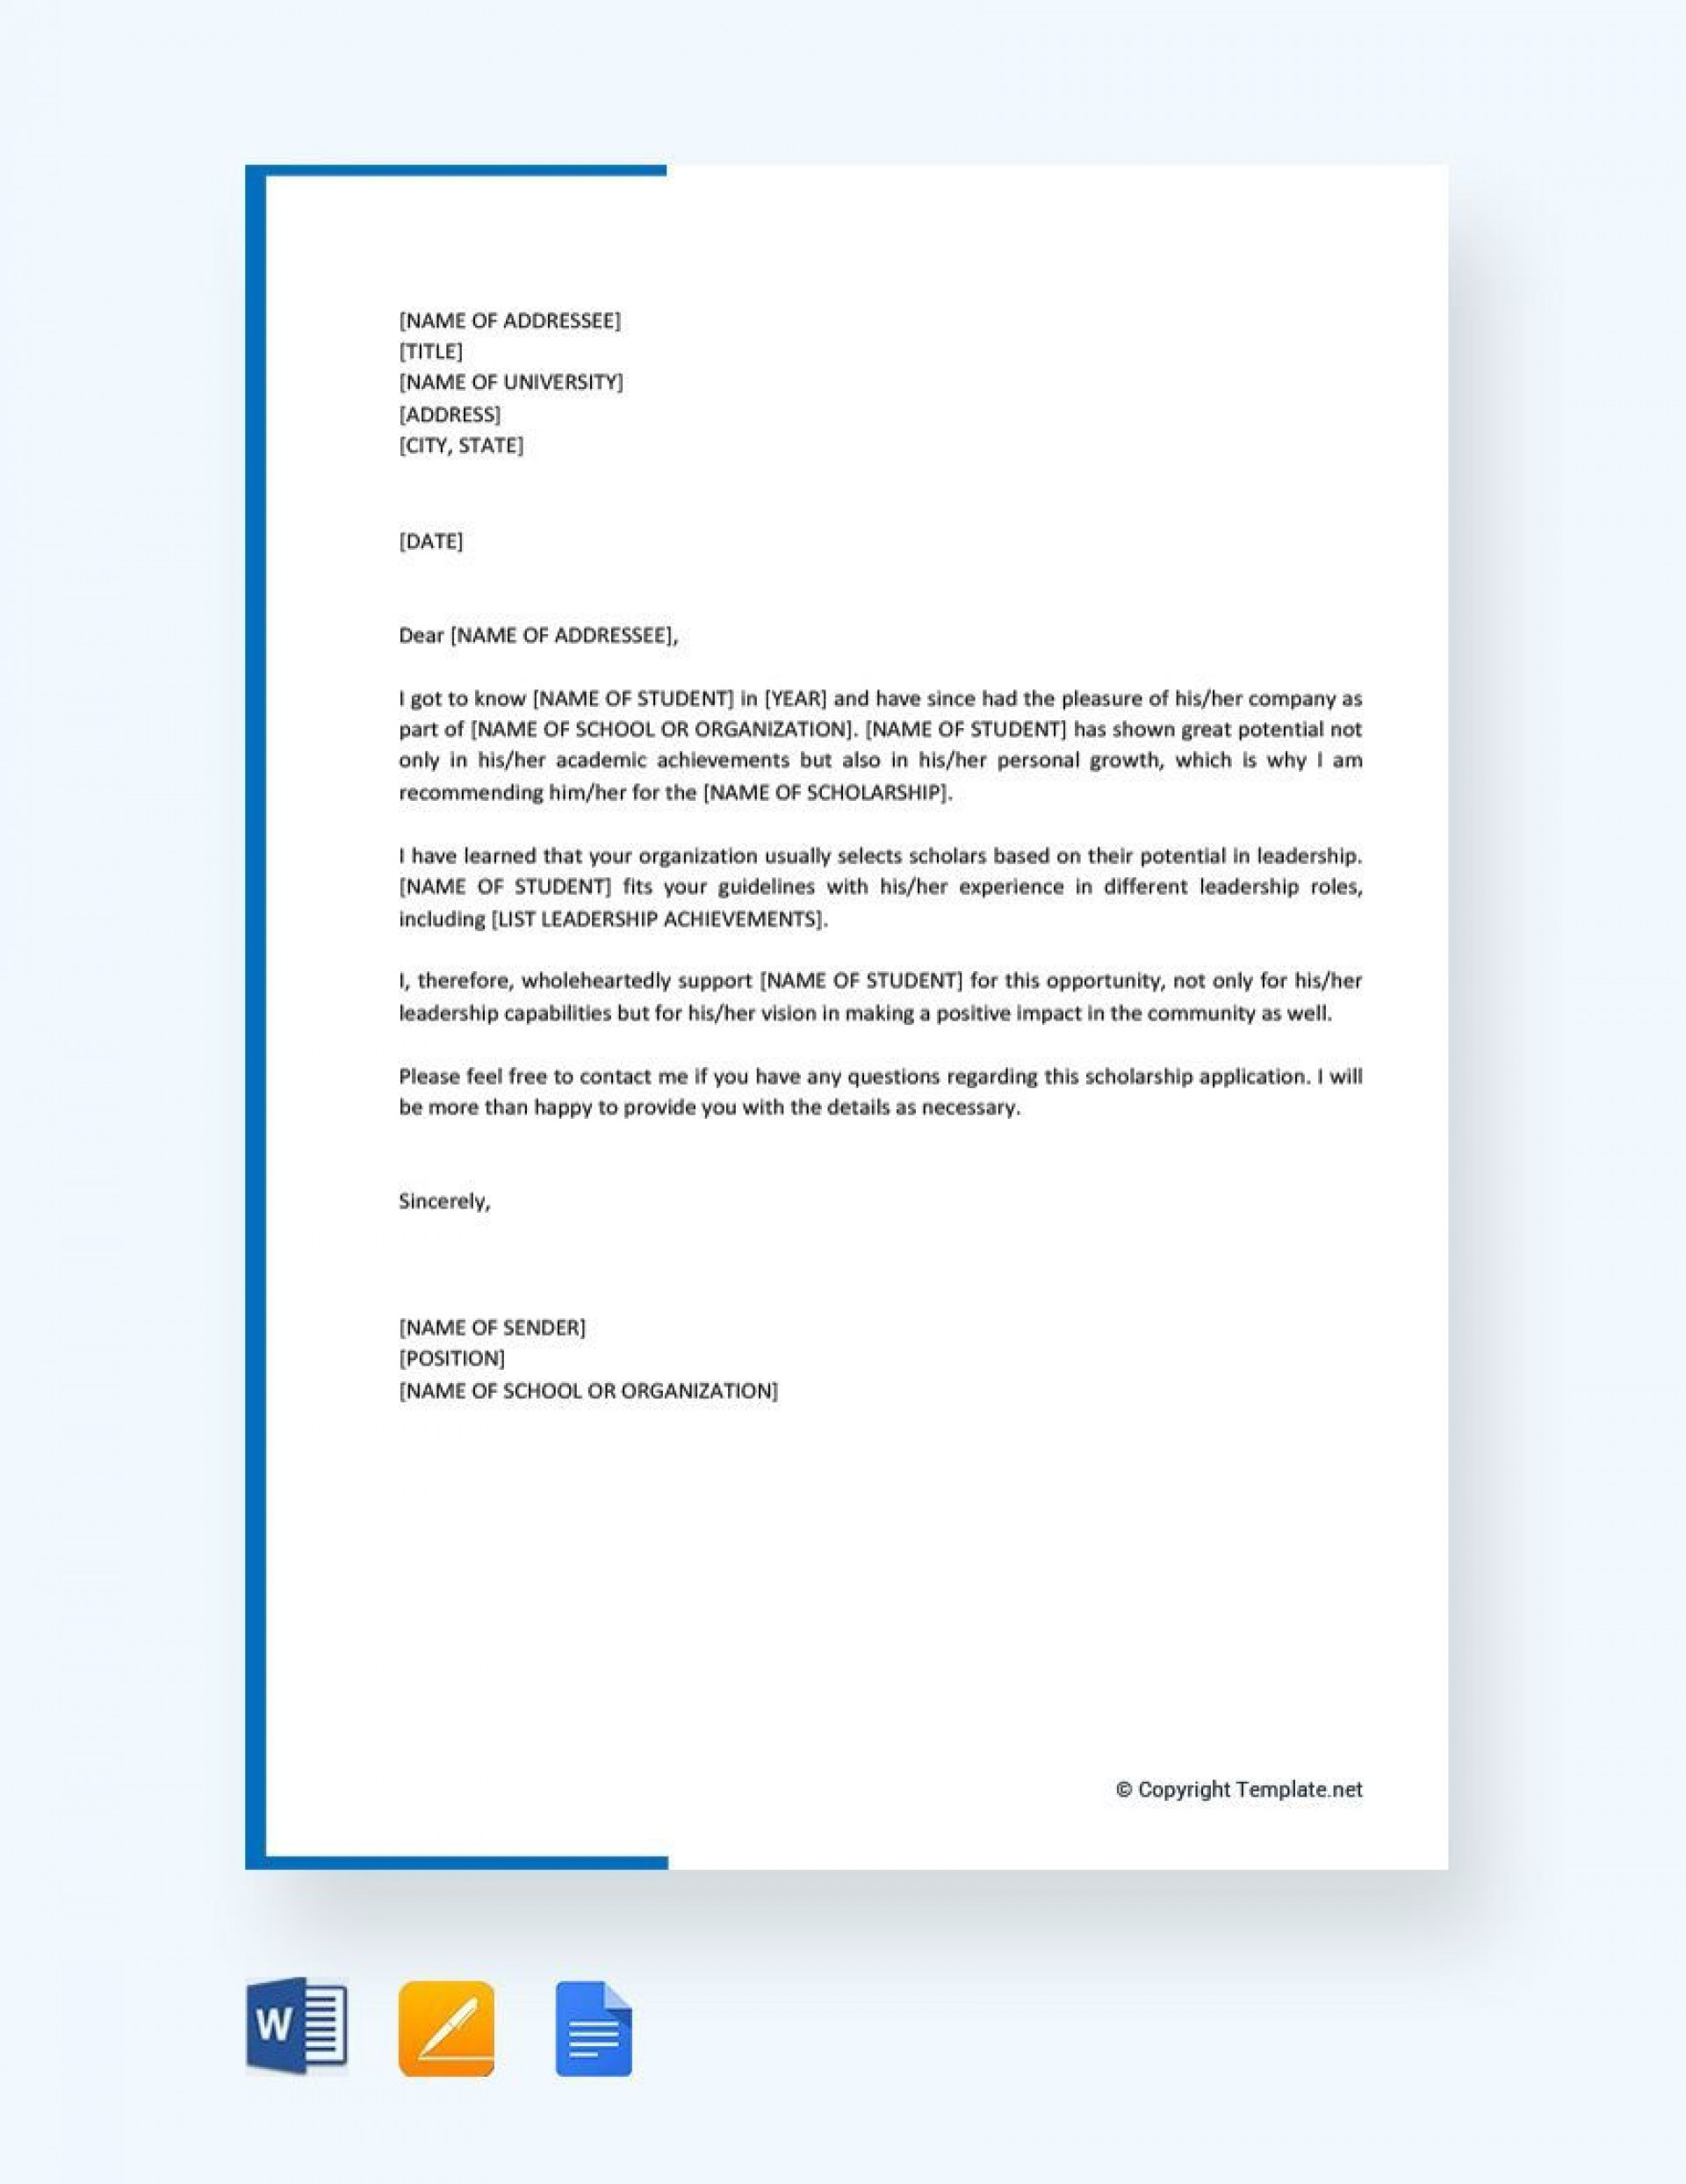 Scholarship Recommendation Letter Example from www.addictionary.org